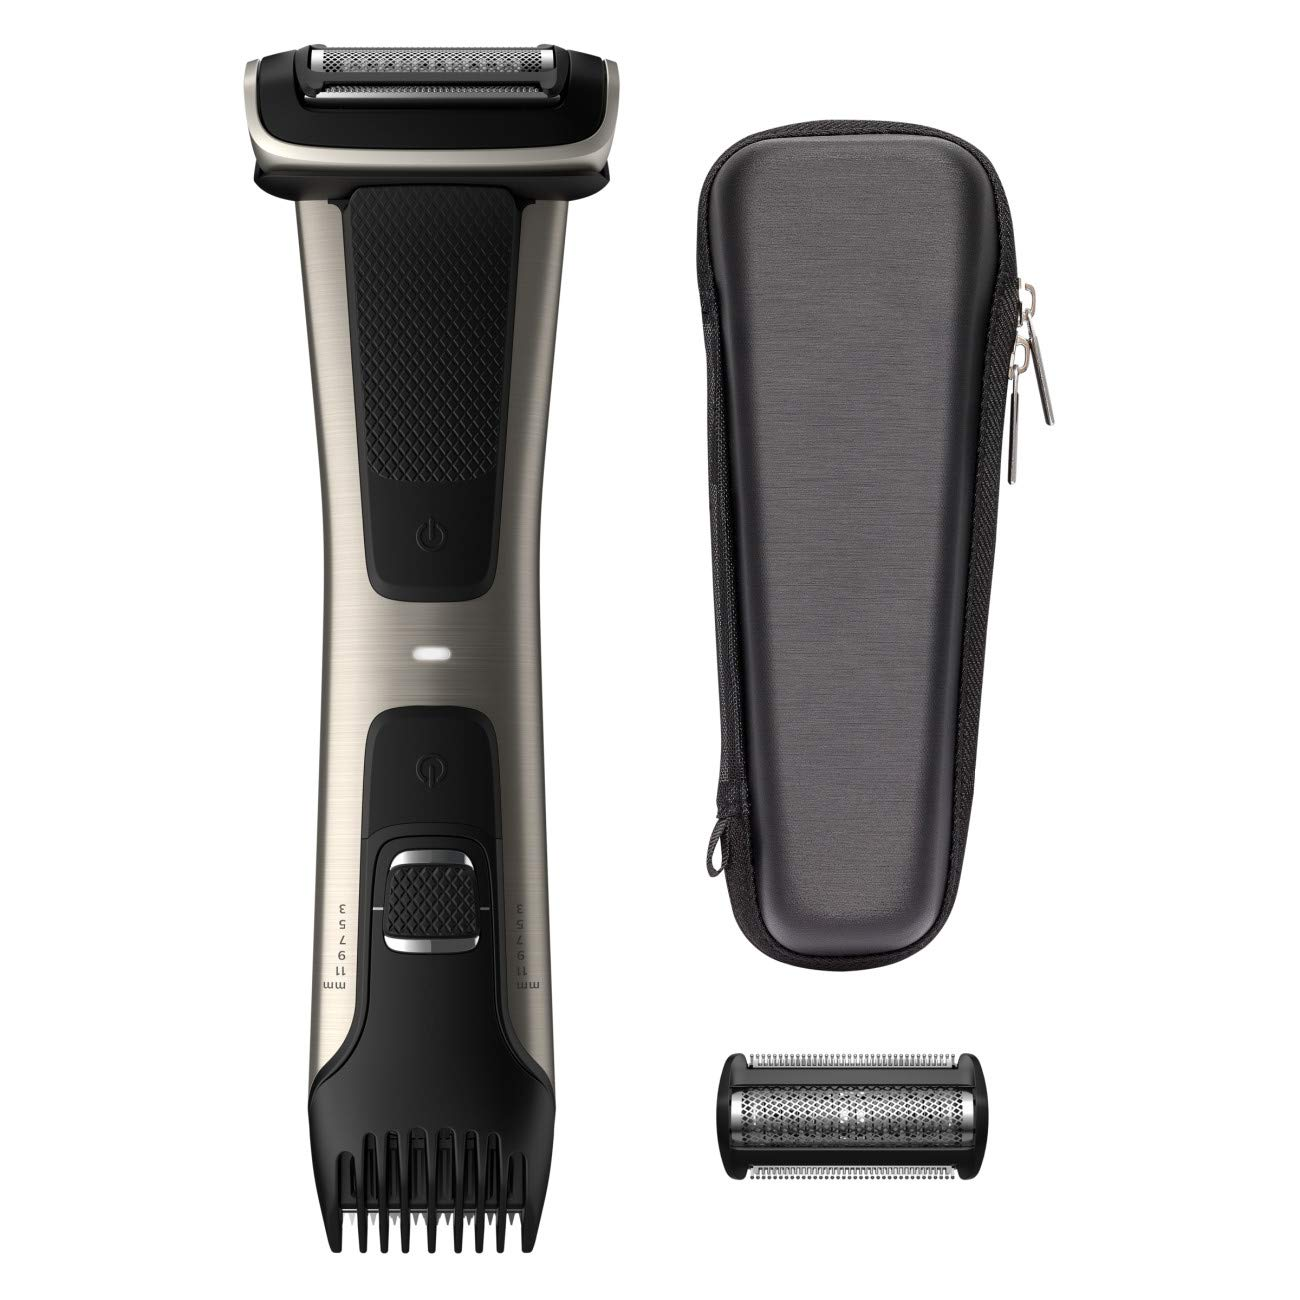 Philips Norelco Bodygroom Series 7000, BG7040/42, Showerproof Dual-sided Body Trimmer and Shaver for Men + Case and Replacement Head by Philips Norelco